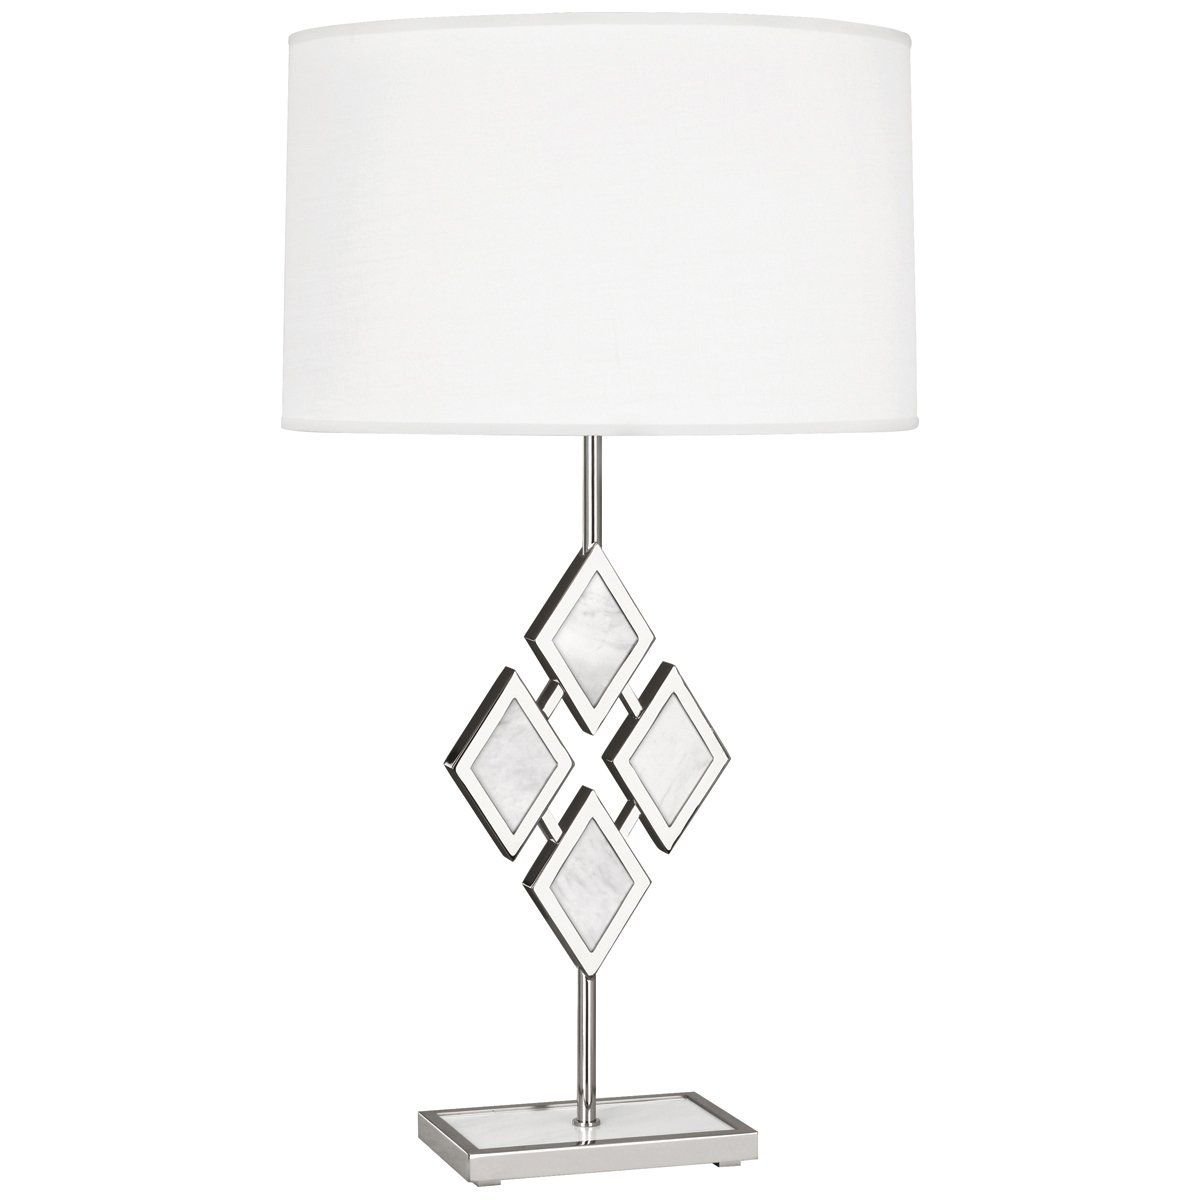 Robert Abbey Edward Table Lamp